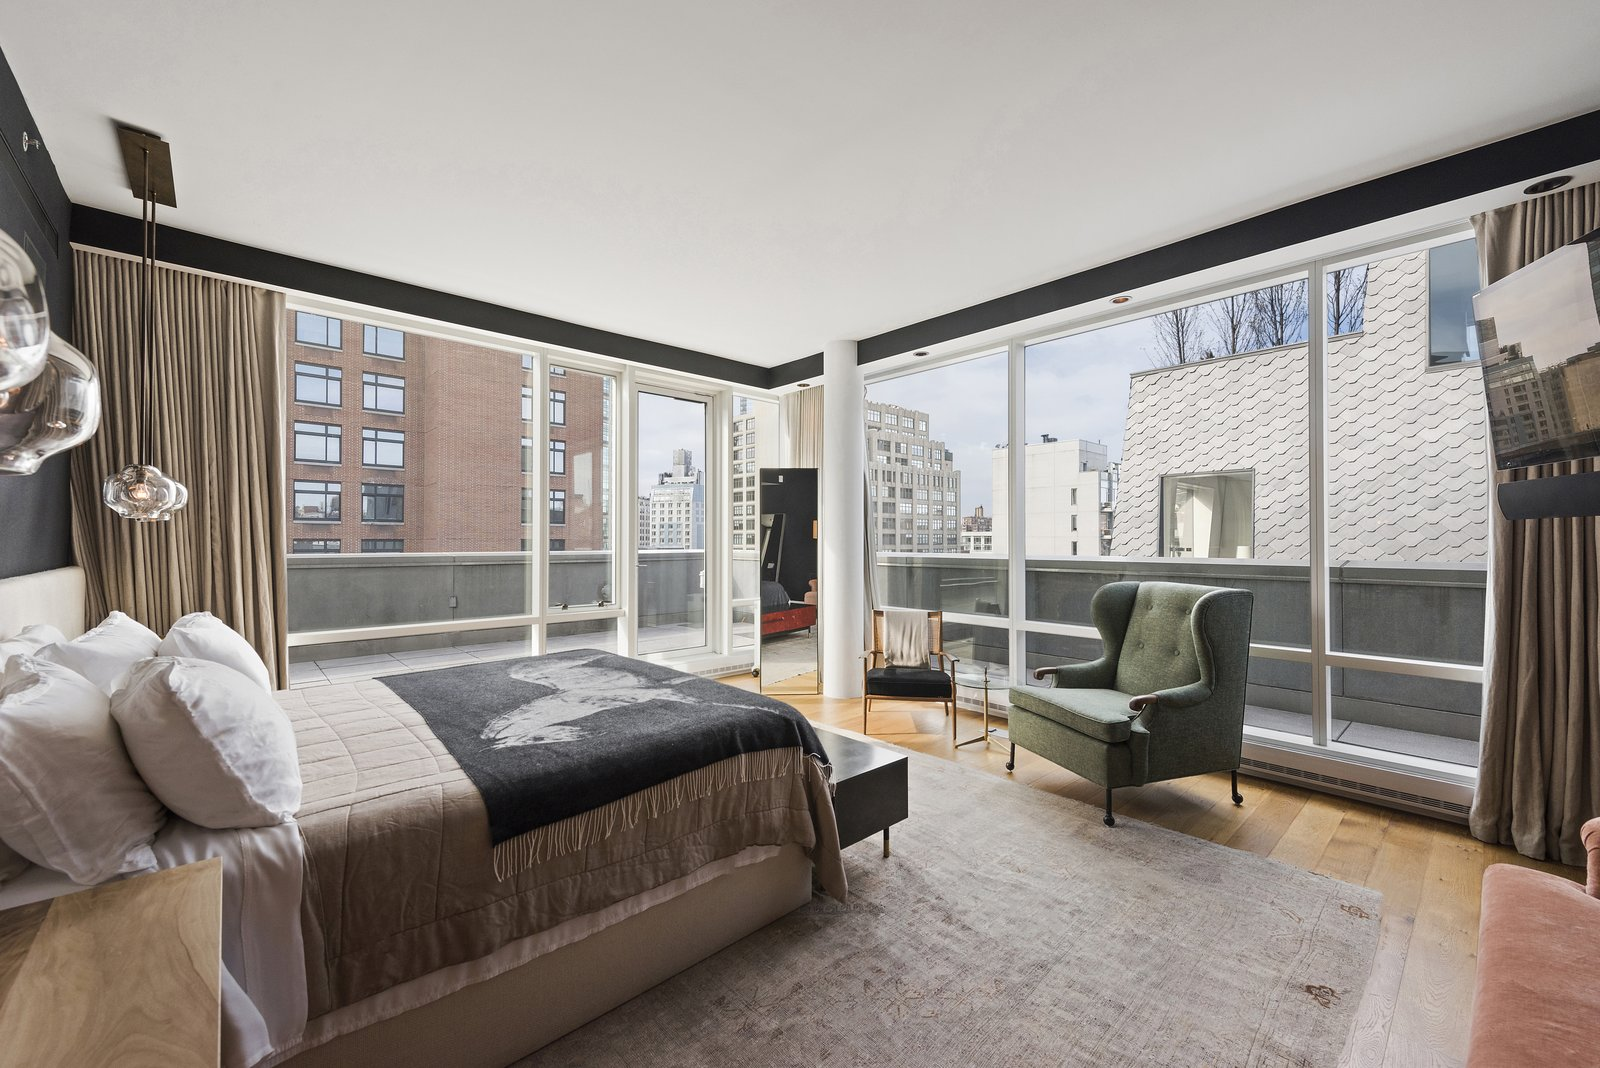 Bedroom, Medium Hardwood, Chair, Bed, Rug, Pendant, Recessed, Night Stands, and Bench The master bedroom features floor-to-ceiling windows and terrace access as well as a deluxe ensuite bathroom.  Best Bedroom Bench Pendant Chair Medium Hardwood Photos from Own Justin Timberlake's Posh Soho Penthouse For $8M